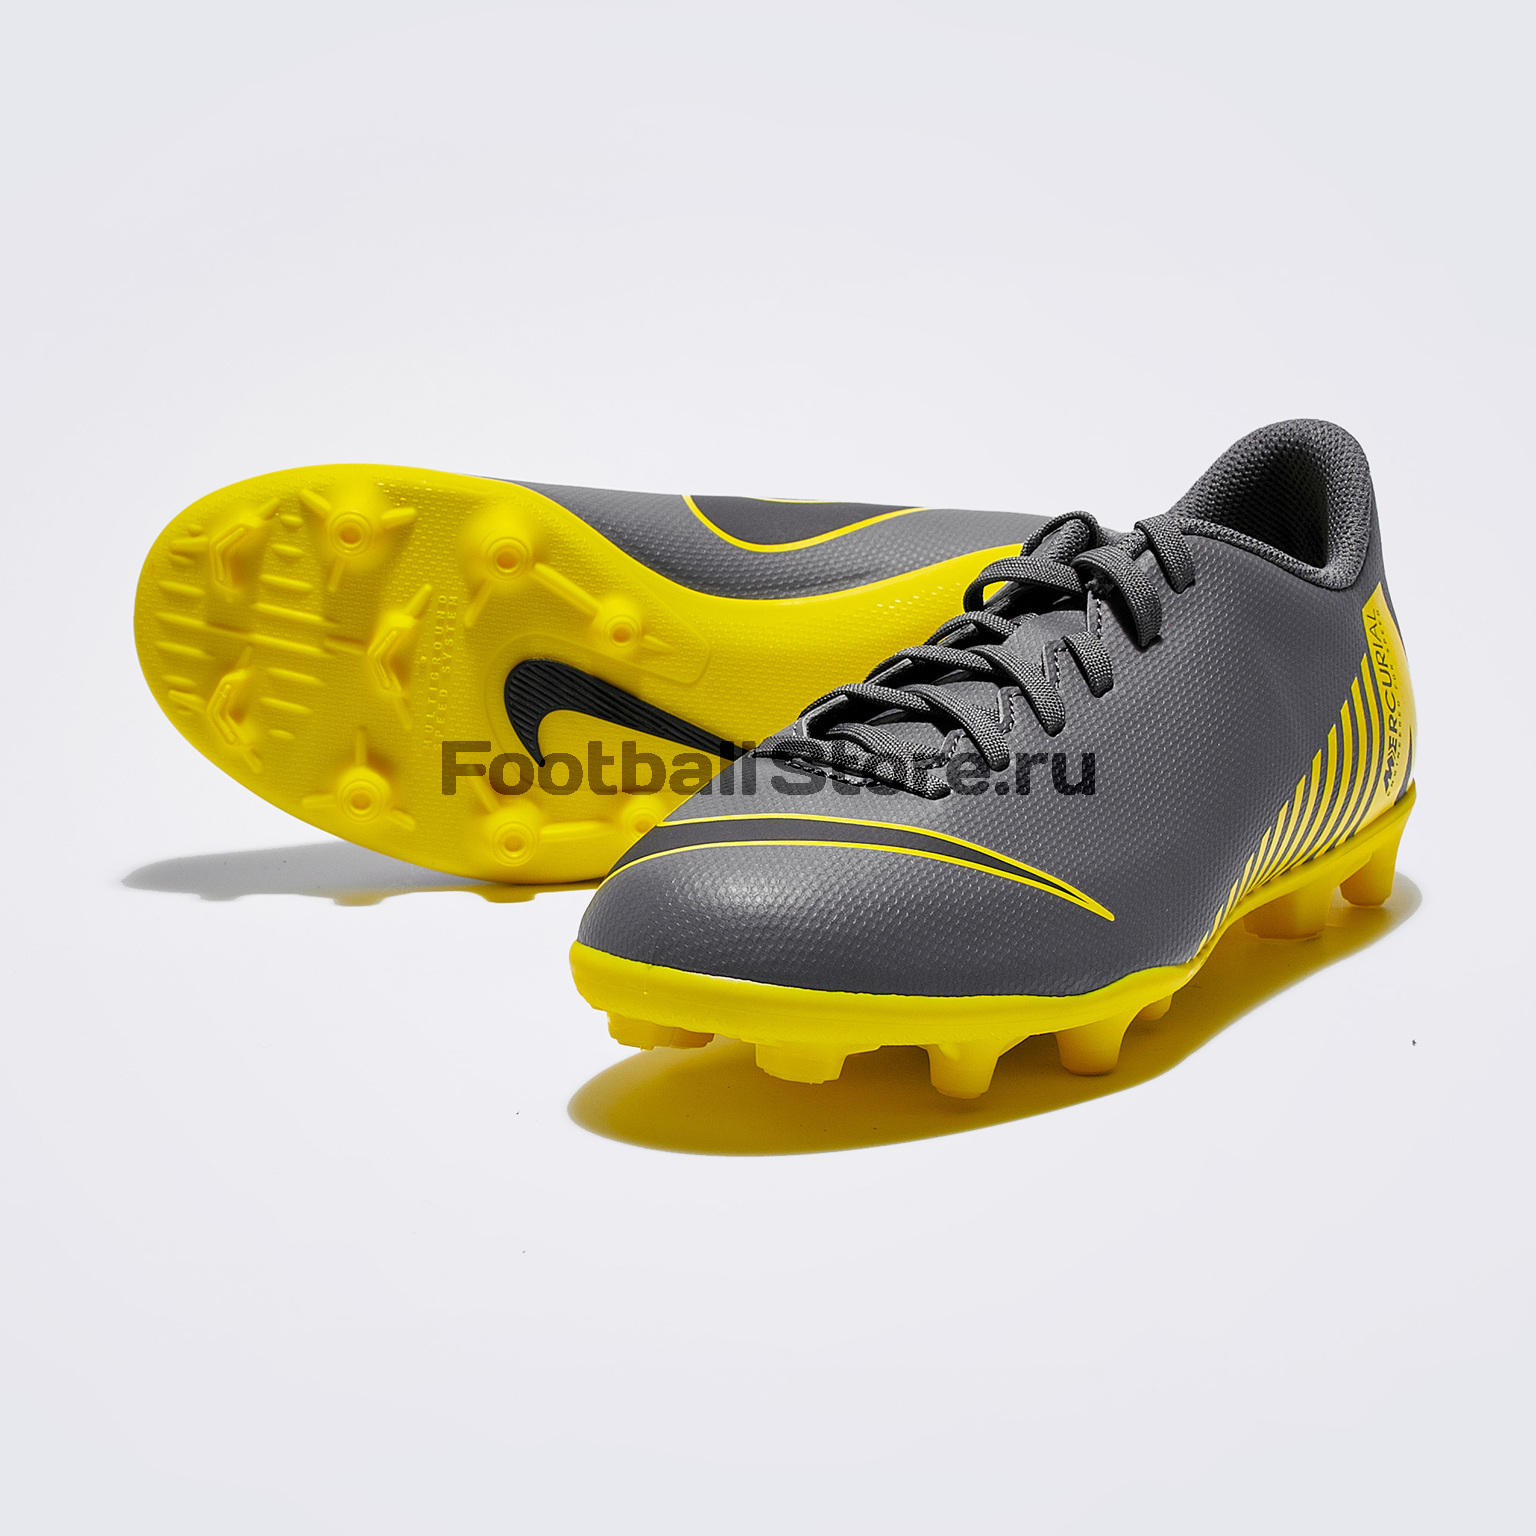 Бутсы детские Nike Vapor 12 Club GS FG/MG AH7350-070 бутсы nike mercurial vapor cr7 fg 684860 014